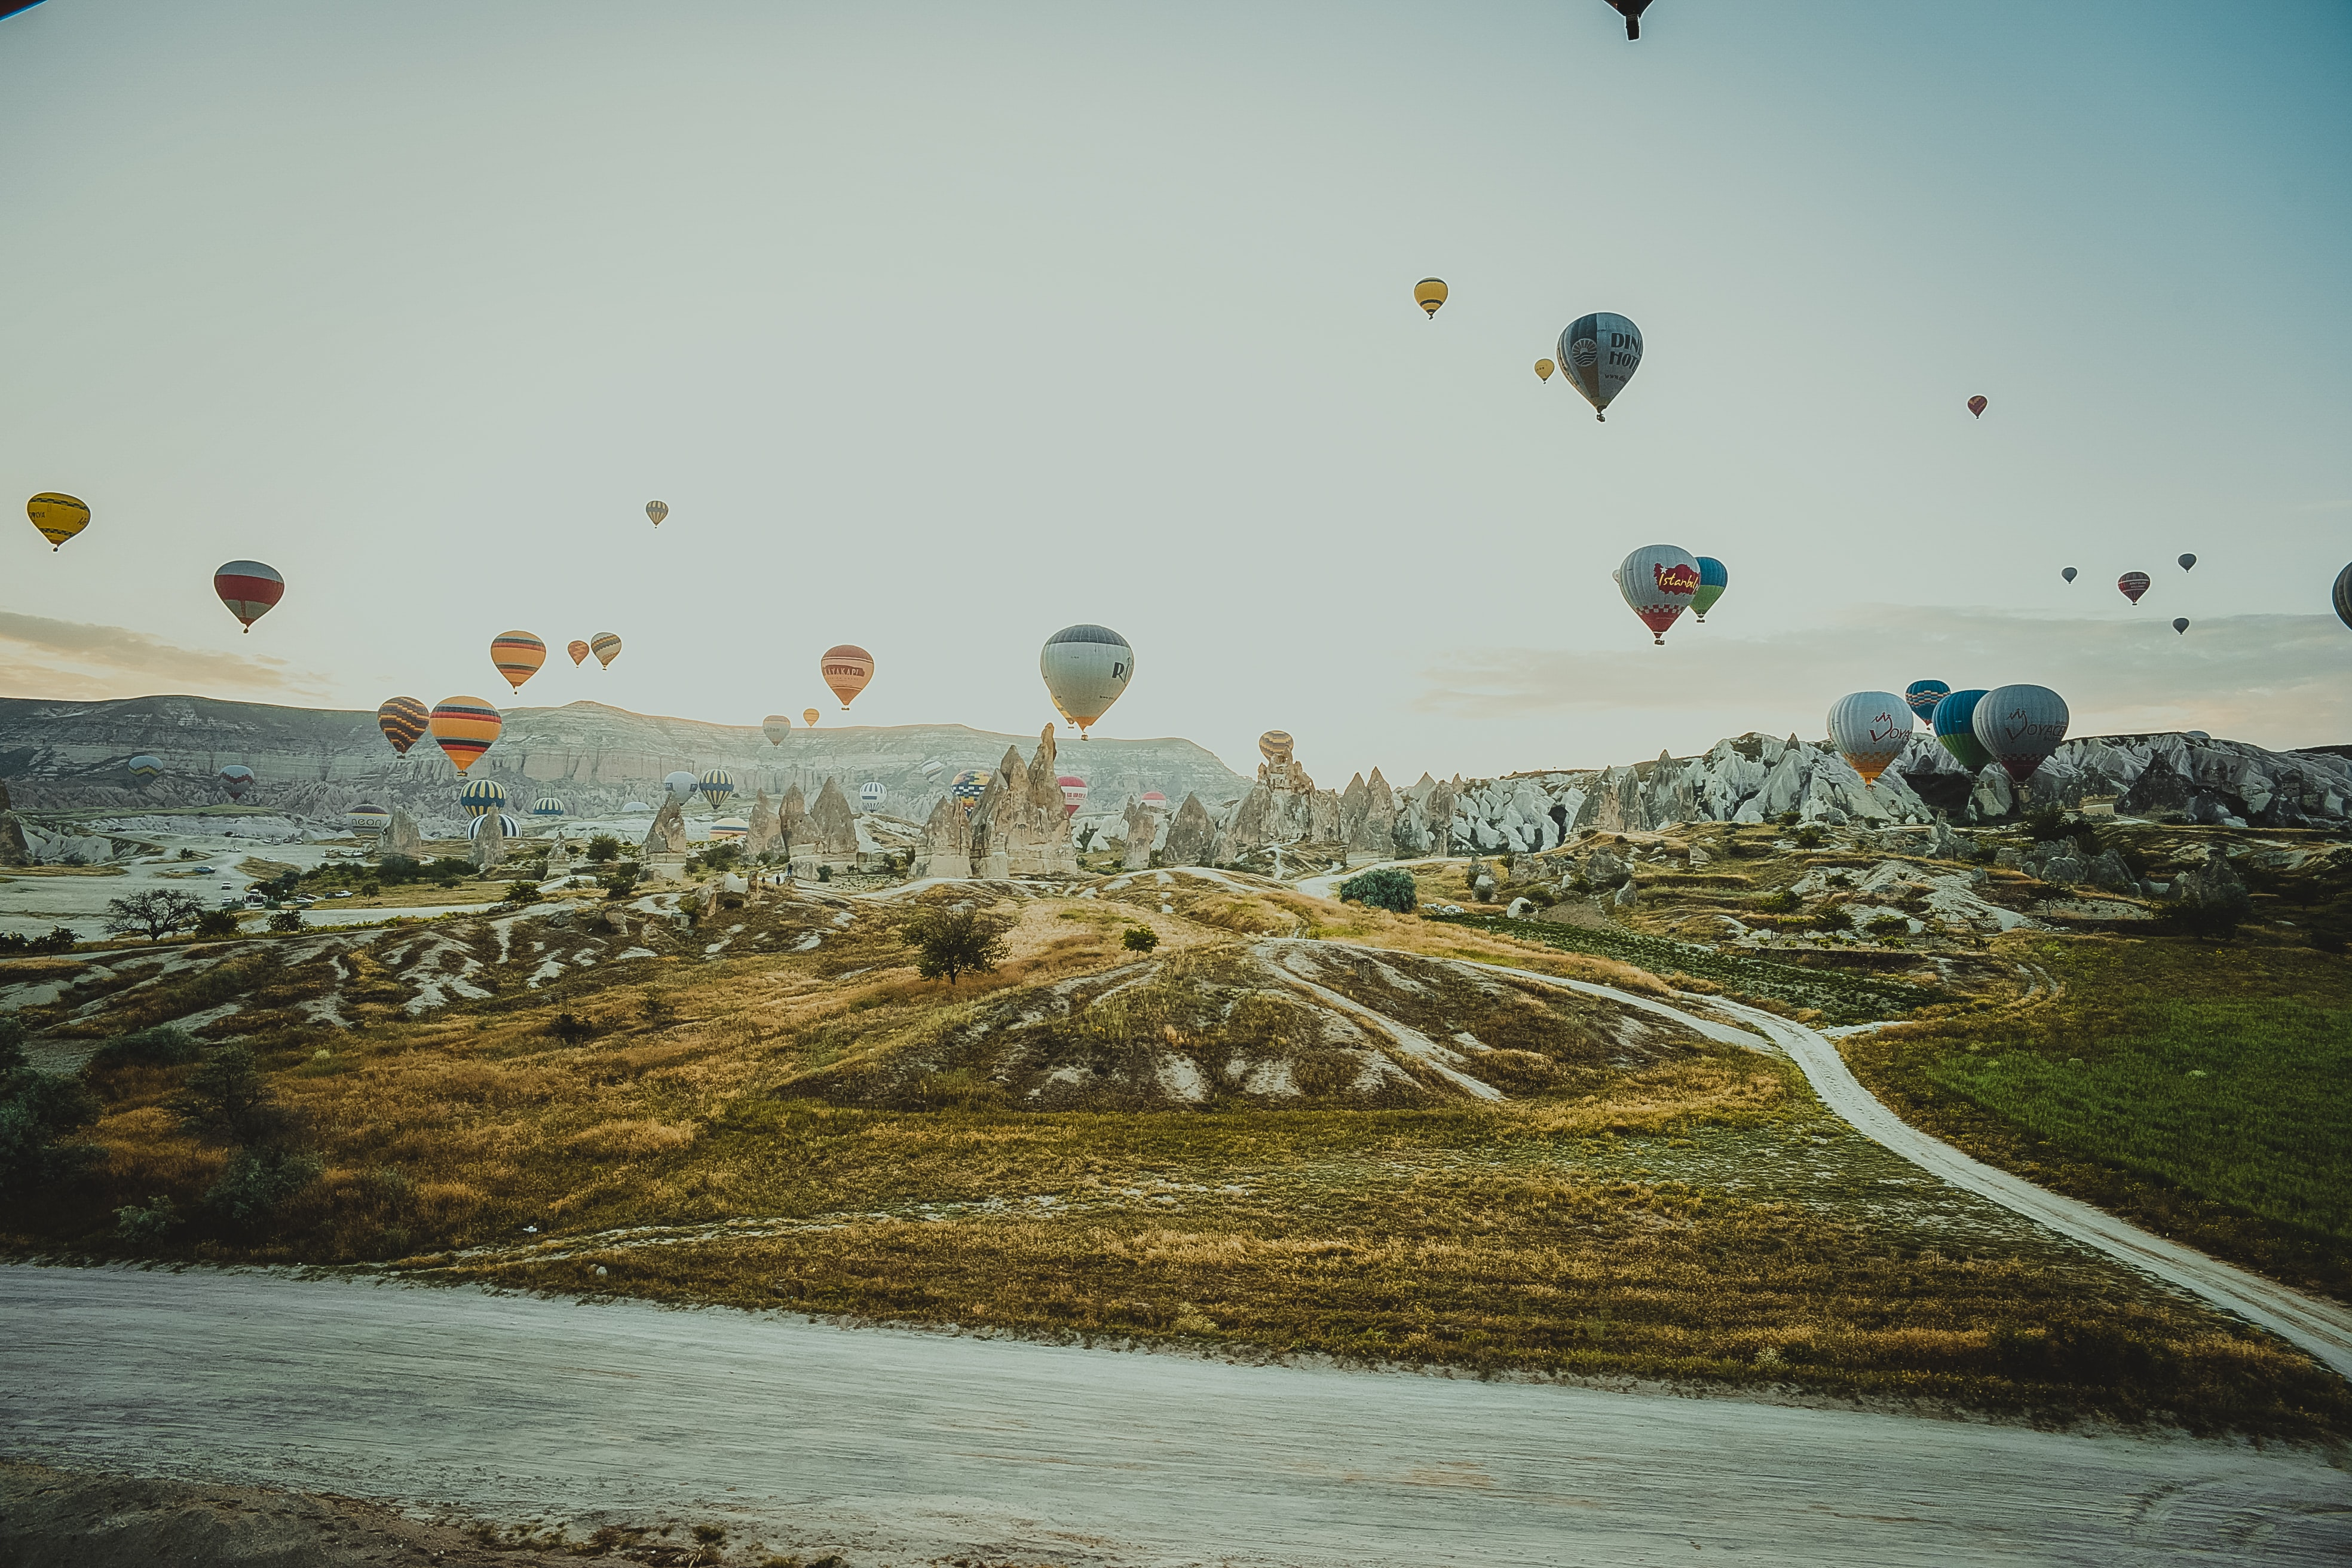 assorted-color hot air balloons floating on air during daytime